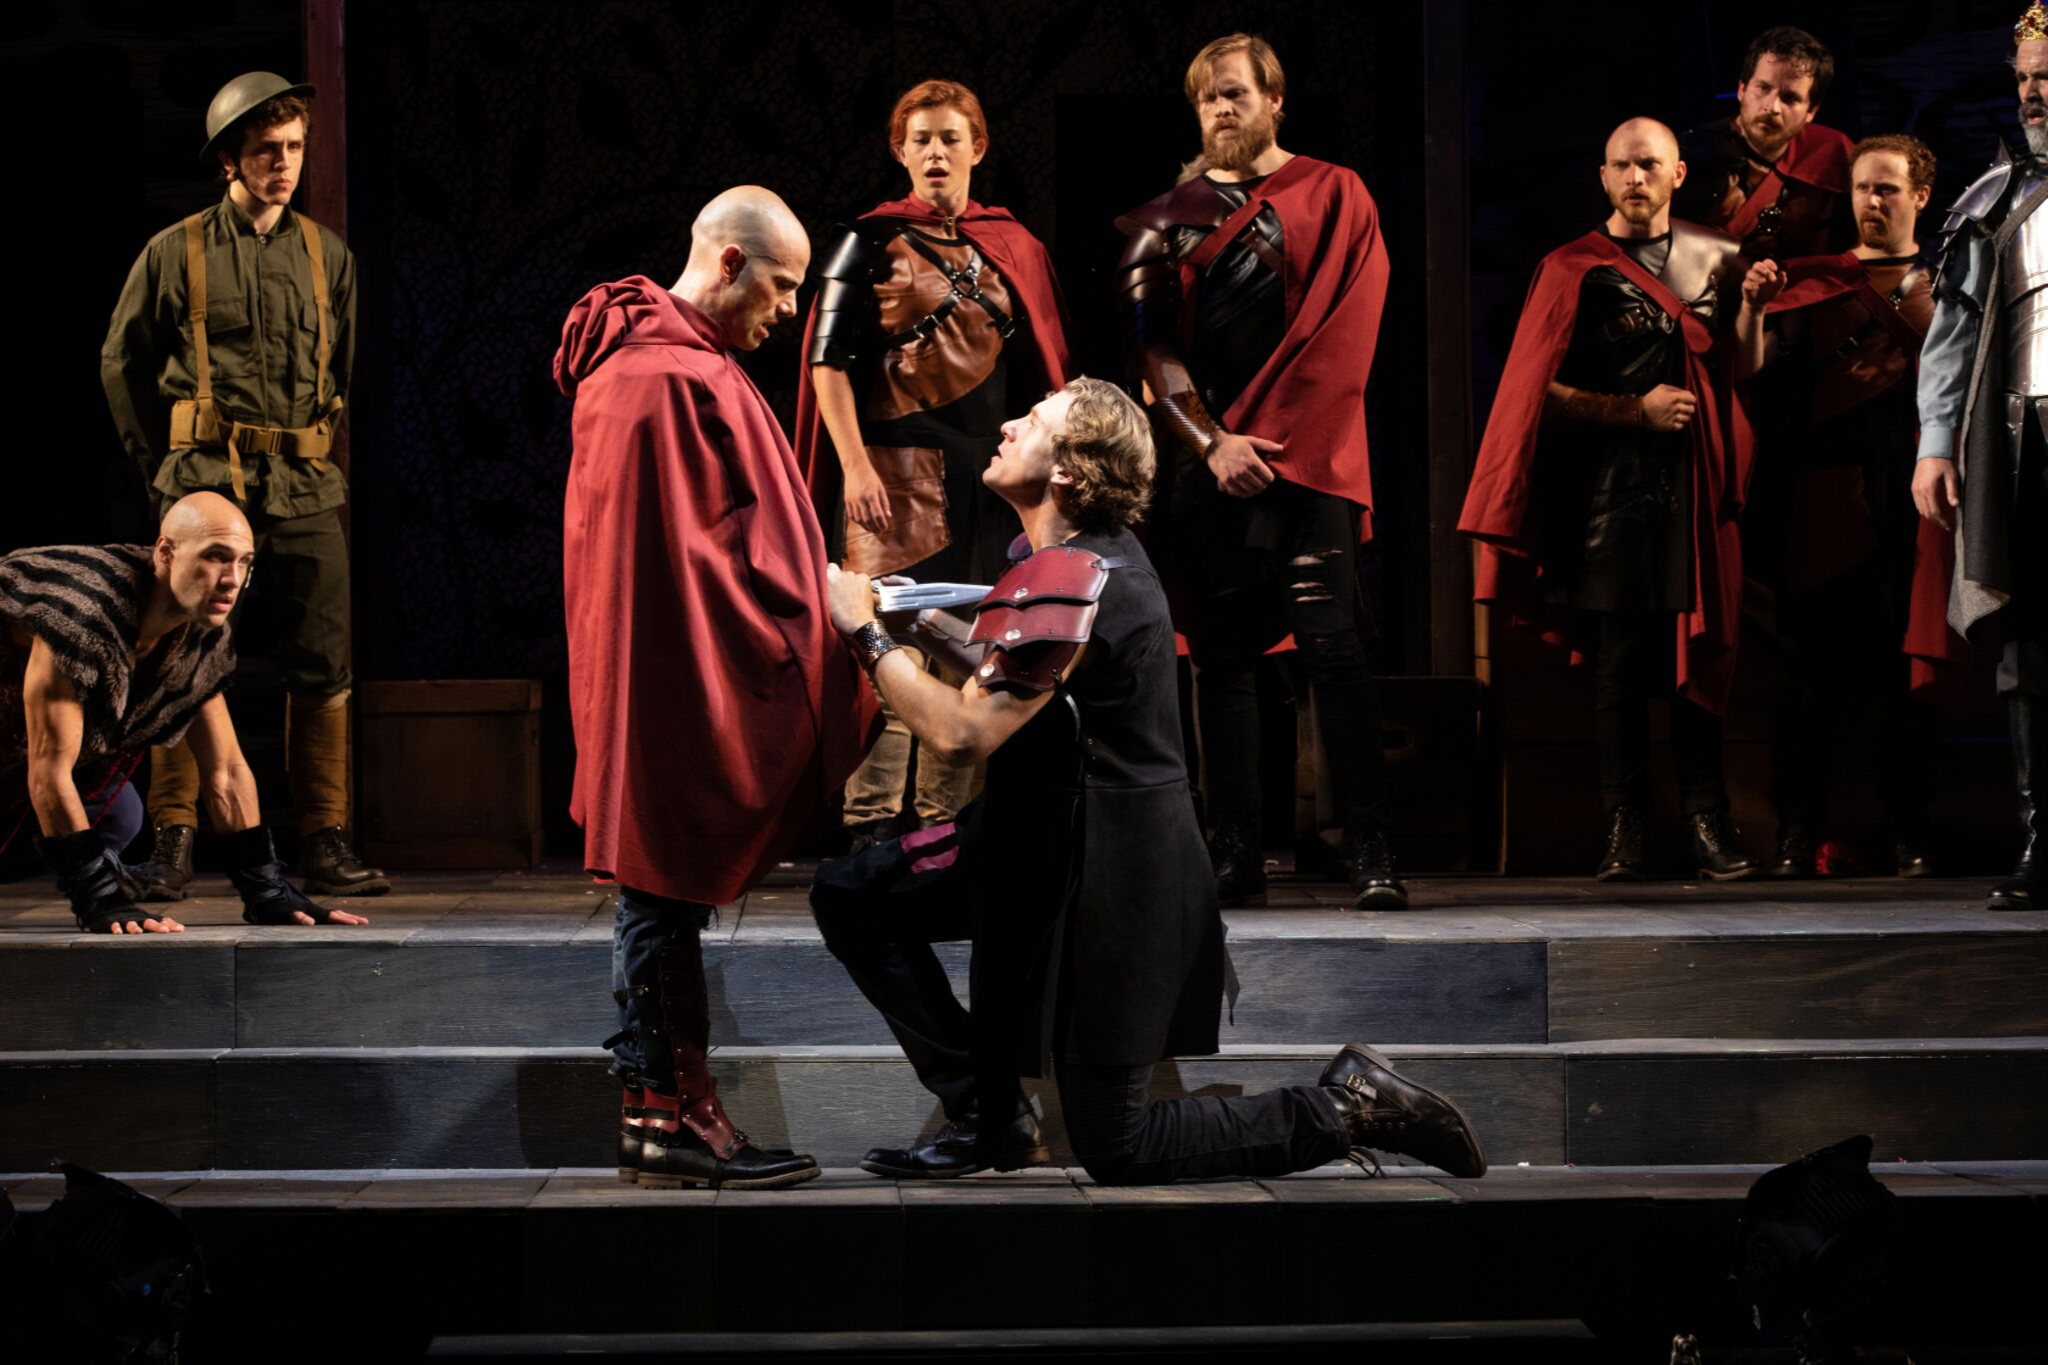 Cymbeline – Commonwealth Shakespeare Company